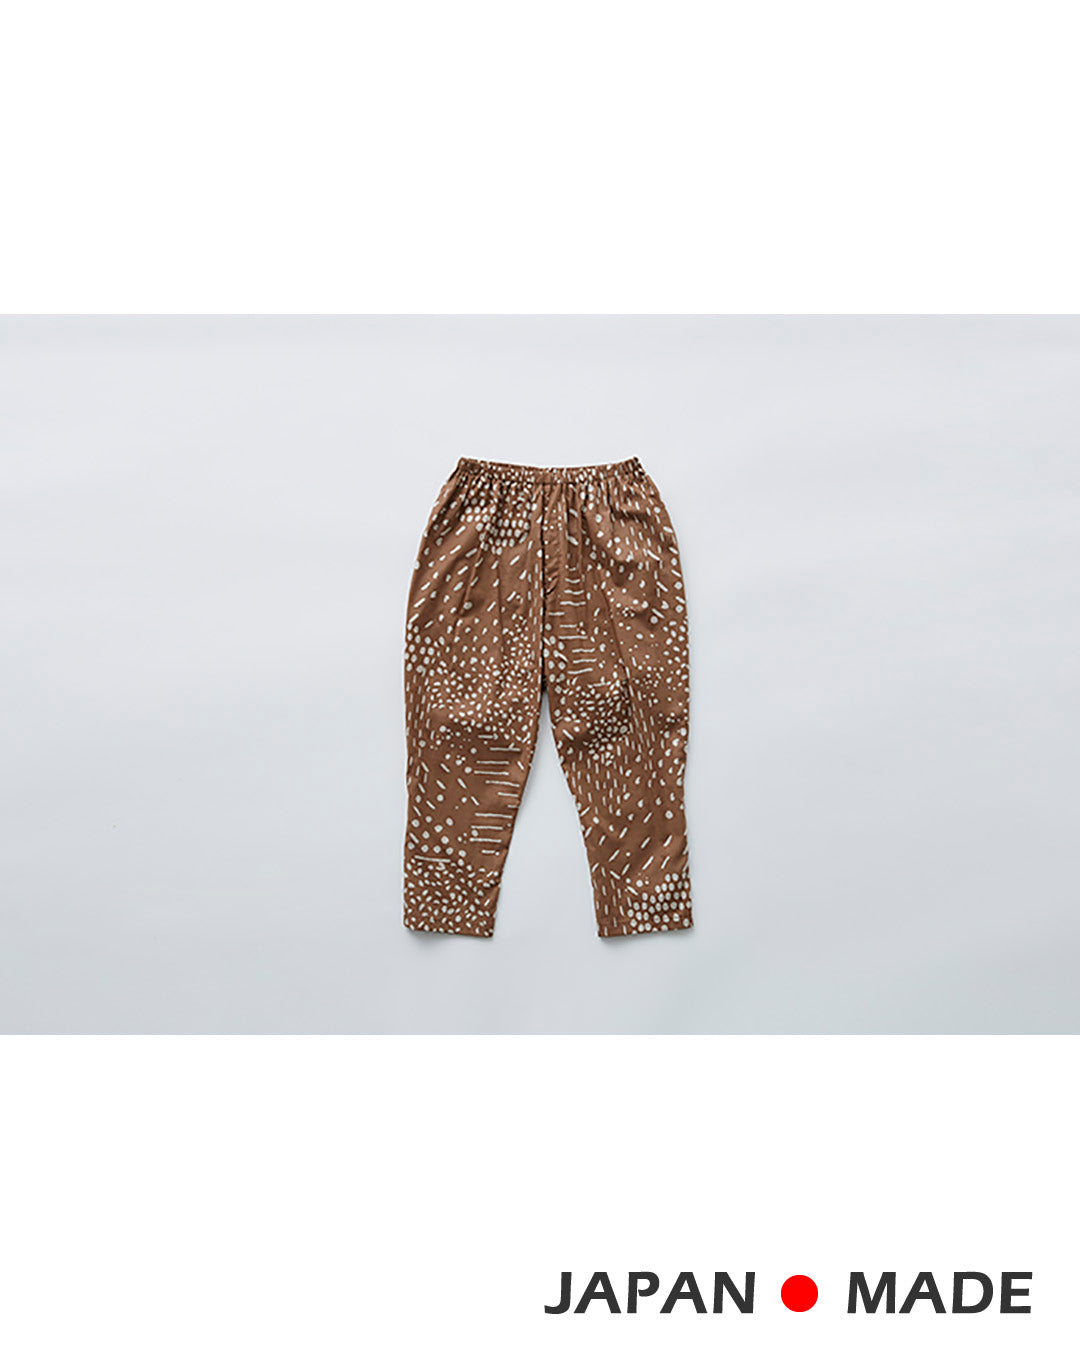 エルフィンフォルク/elfinfolk qilin pants (brown)211F05